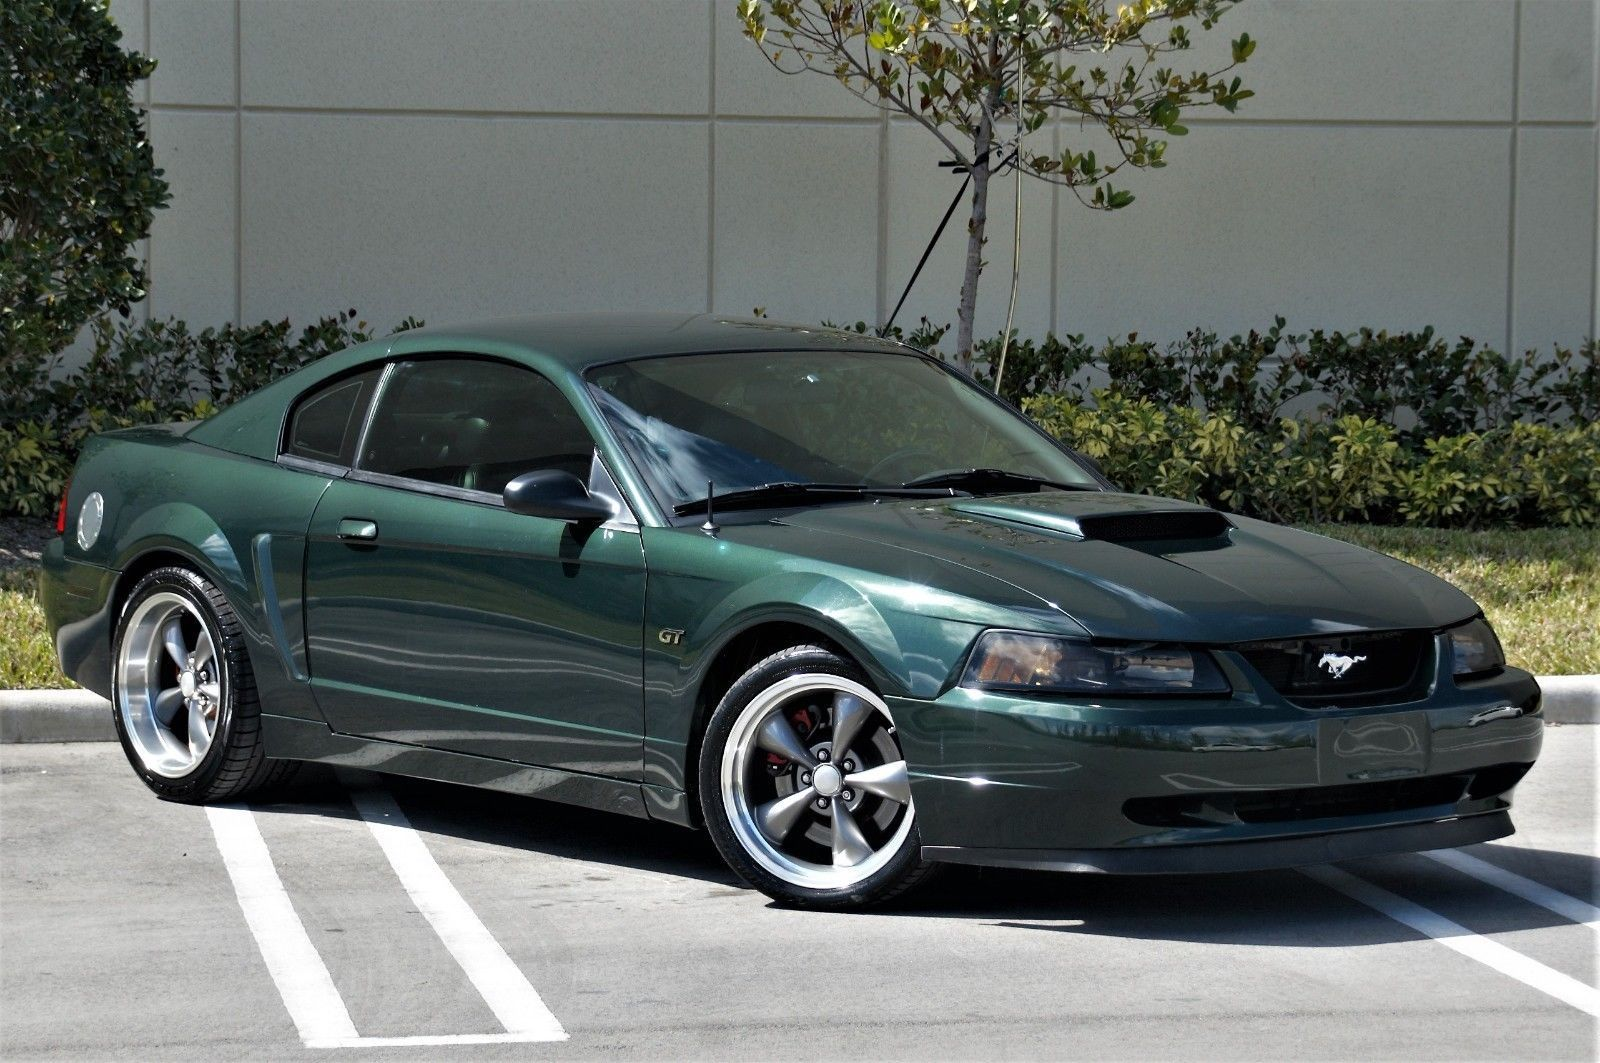 Awesome Great 2001 Ford Mustang Bullitt 2001 Mustang Gt Bullitt Super Clean 2017 In 2020 Ford